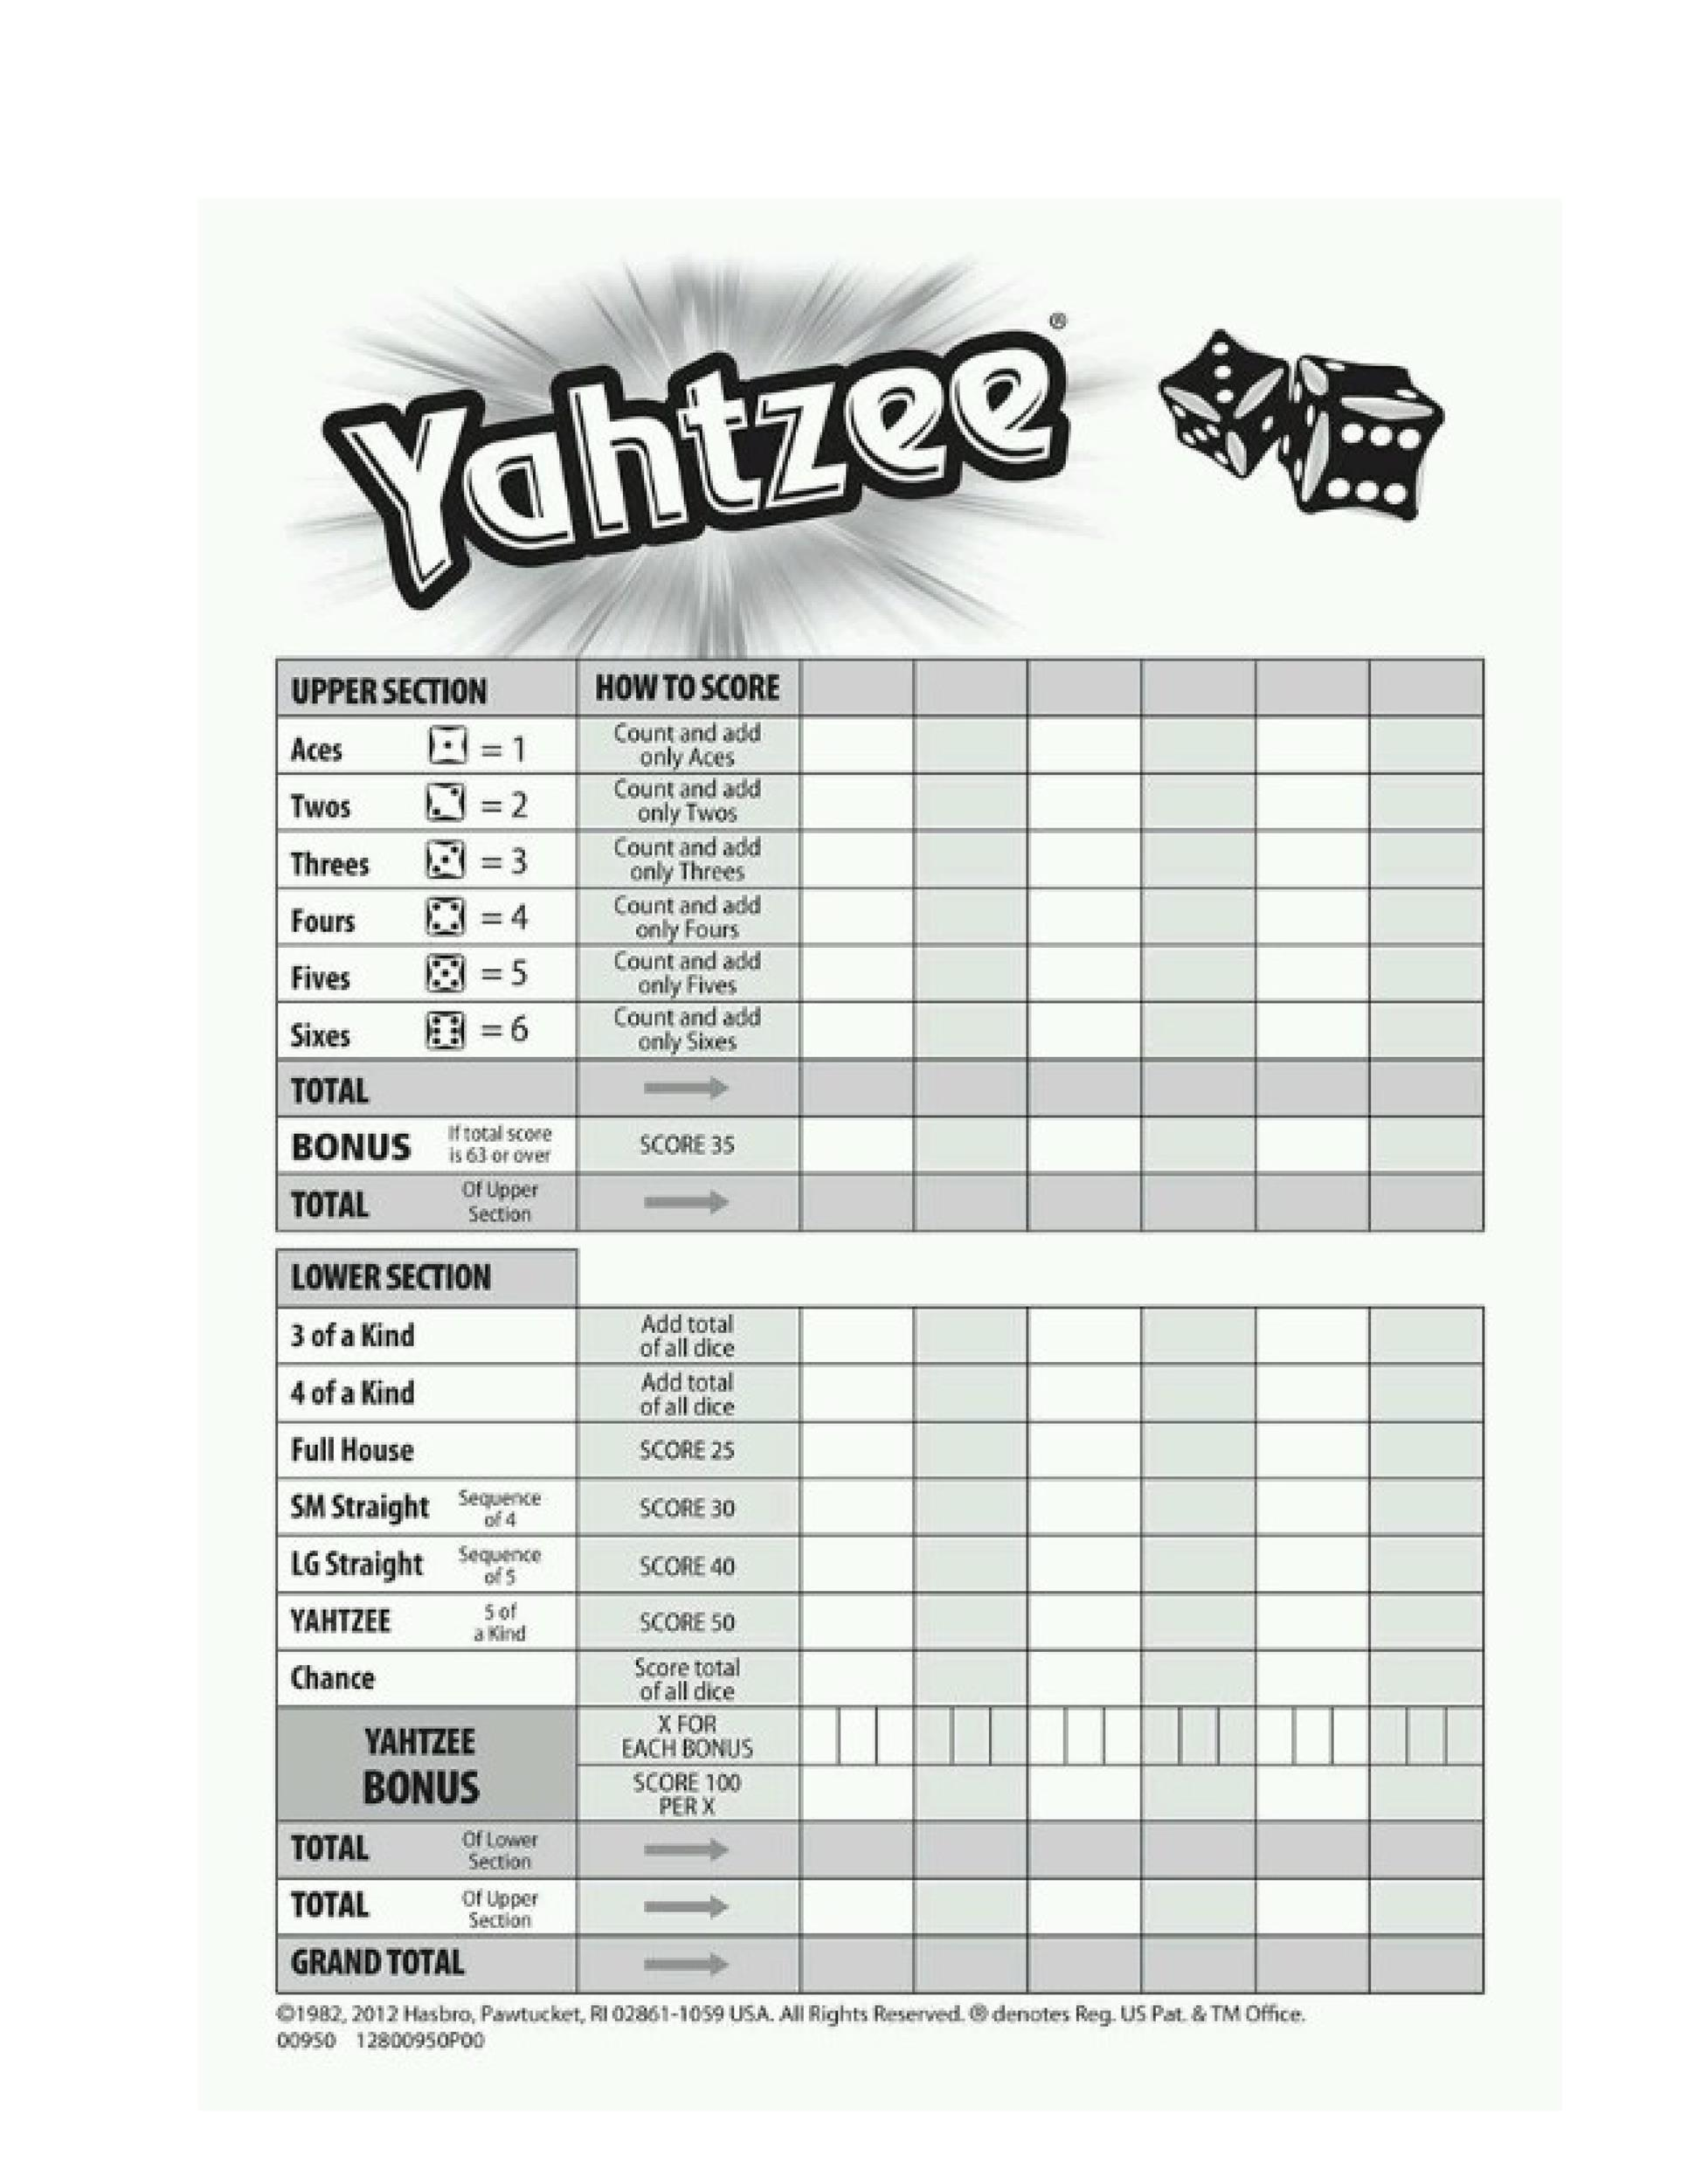 picture about Yahtzee Rules Printable titled 28 Printable Yahtzee Rating Sheets Playing cards (101% Free of charge) ᐅ